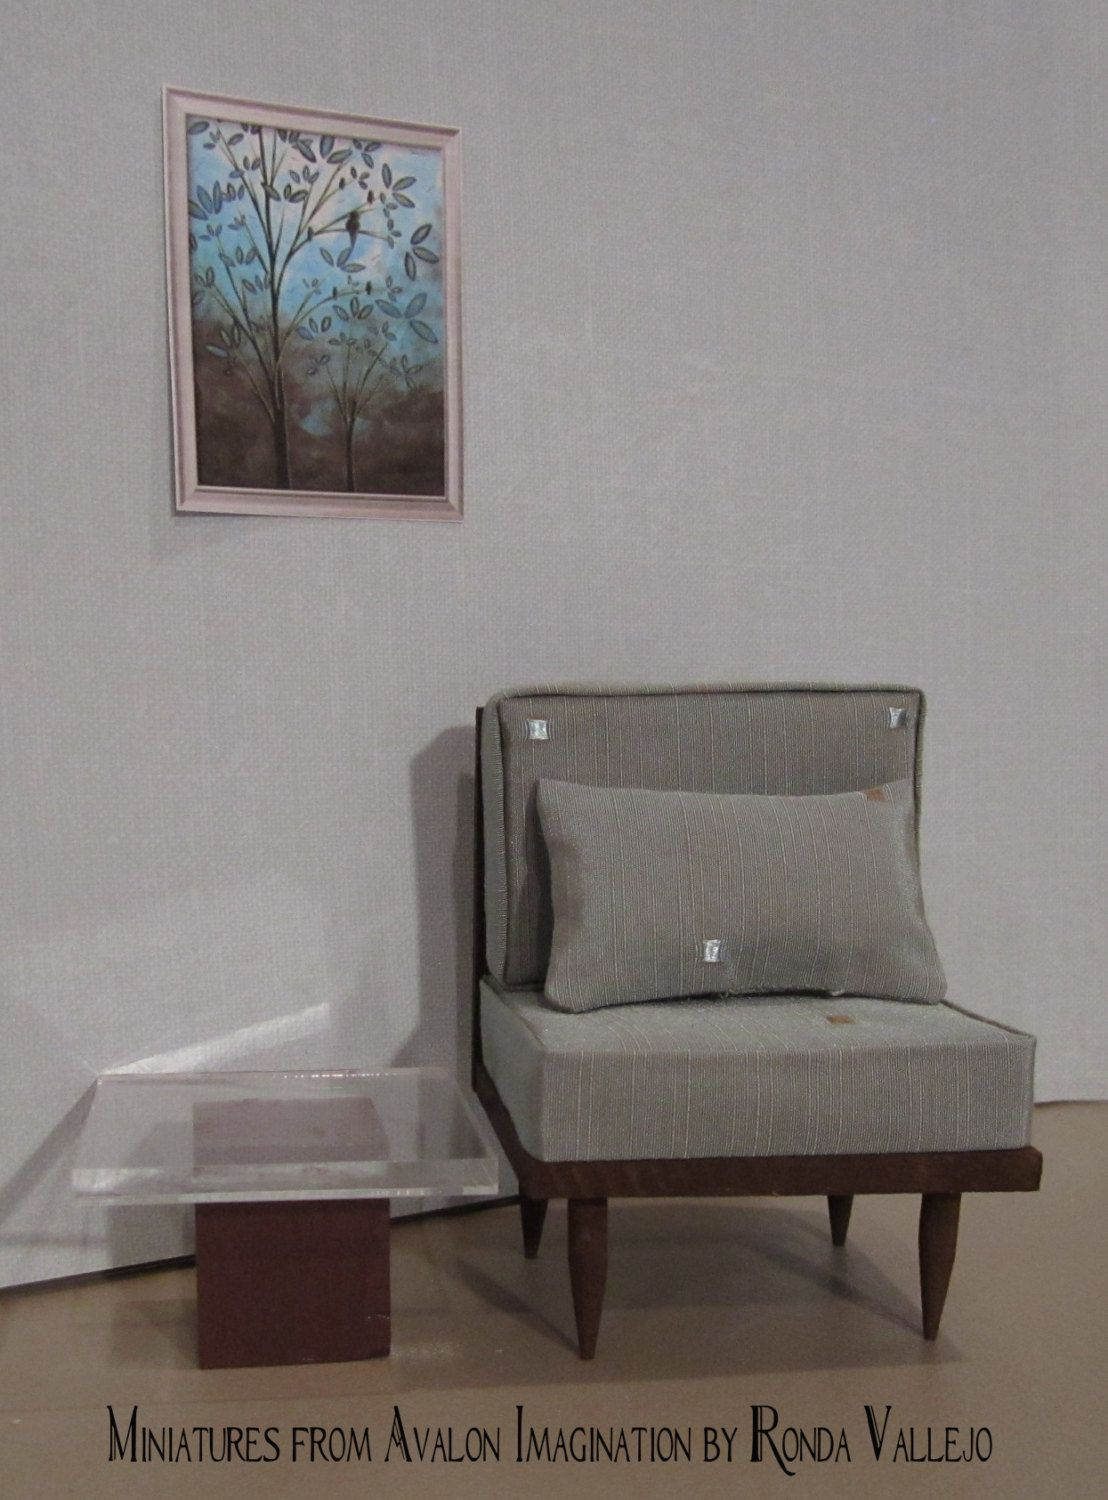 1:6th Scale Barbie, Blythe, etc. Miniature dollhouse Chair and pillow upholstered in decorator style fabric